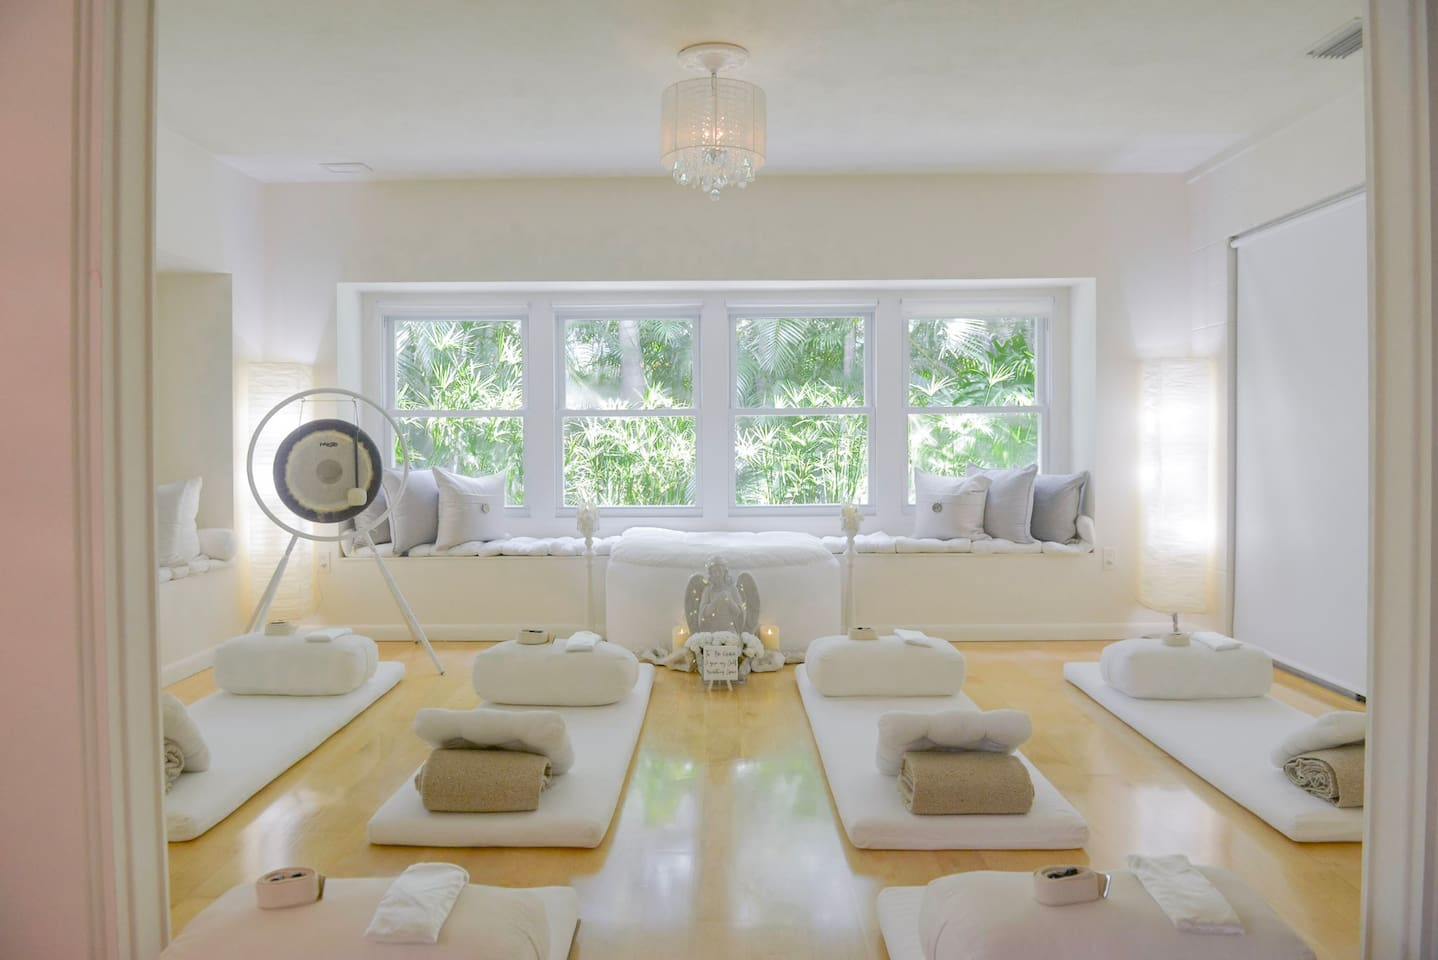 Schedule yoga and meditation in the Yoga Therapy Space over-looking the nature altar. Wring out tired muscles on your personal Rejuvenation Station, equipped with lavender eye rests, pillows, blankets, yoga belts, and leg bolsters.